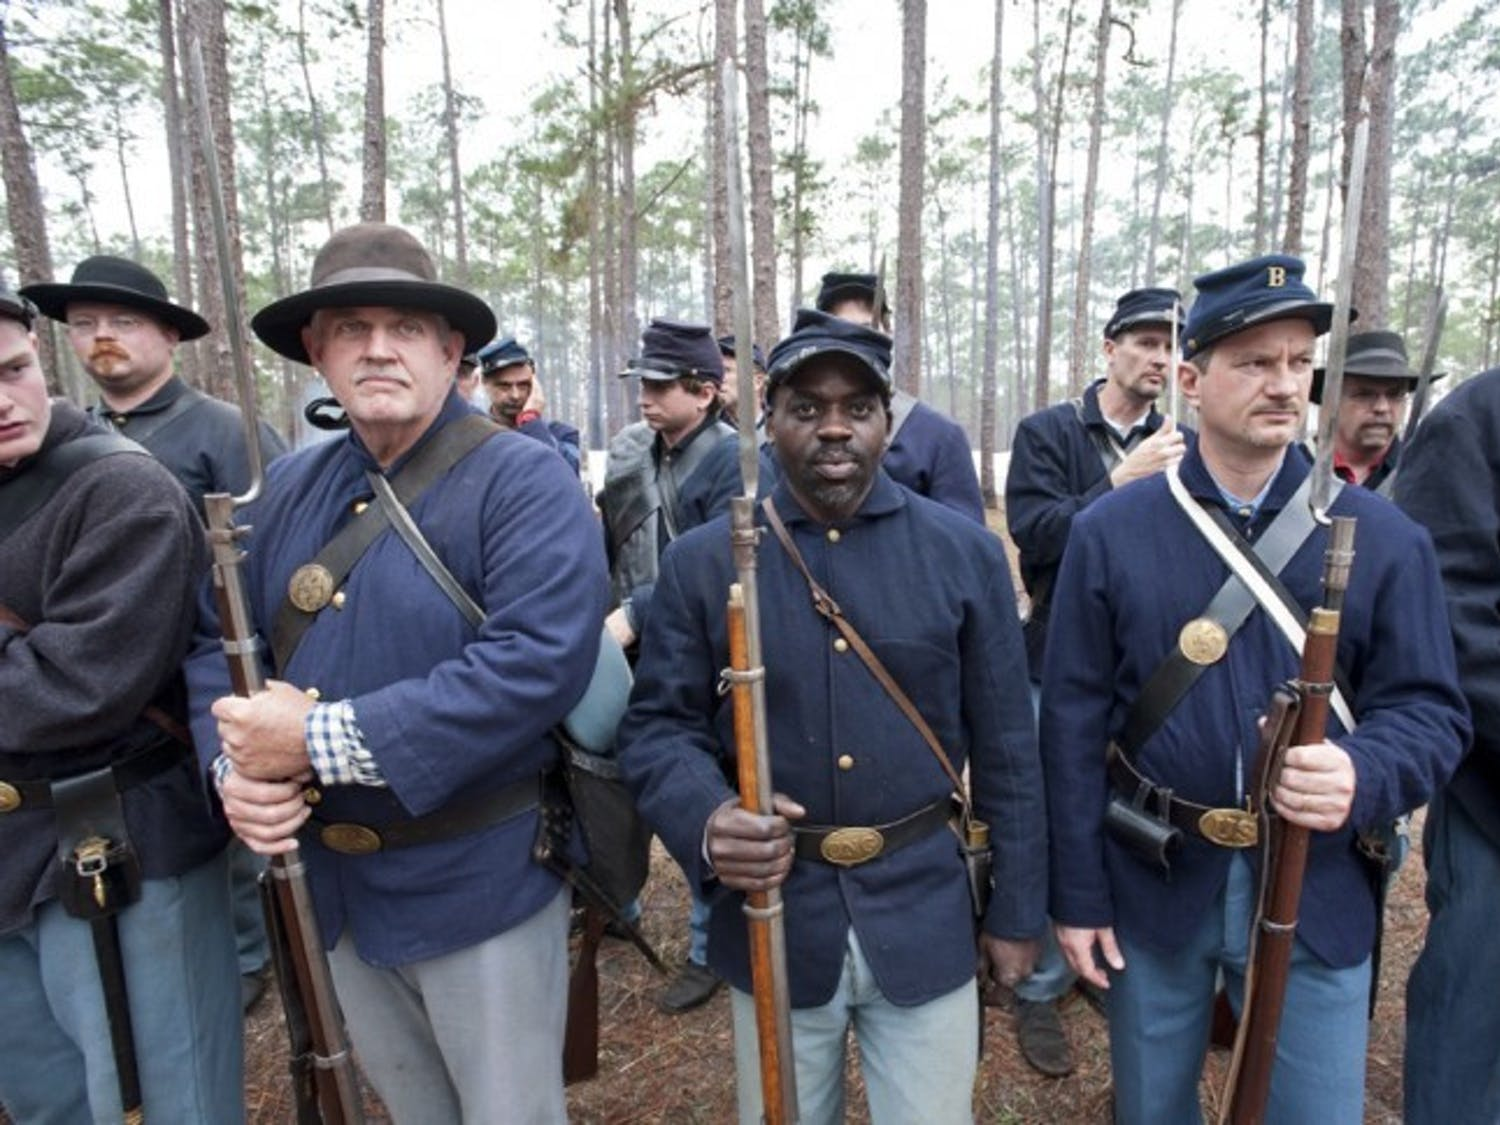 Edgar McCray, of the 54th Regiment Massachusetts Volunteer Infantry, stands in formation during an afternoon inspection Saturday.